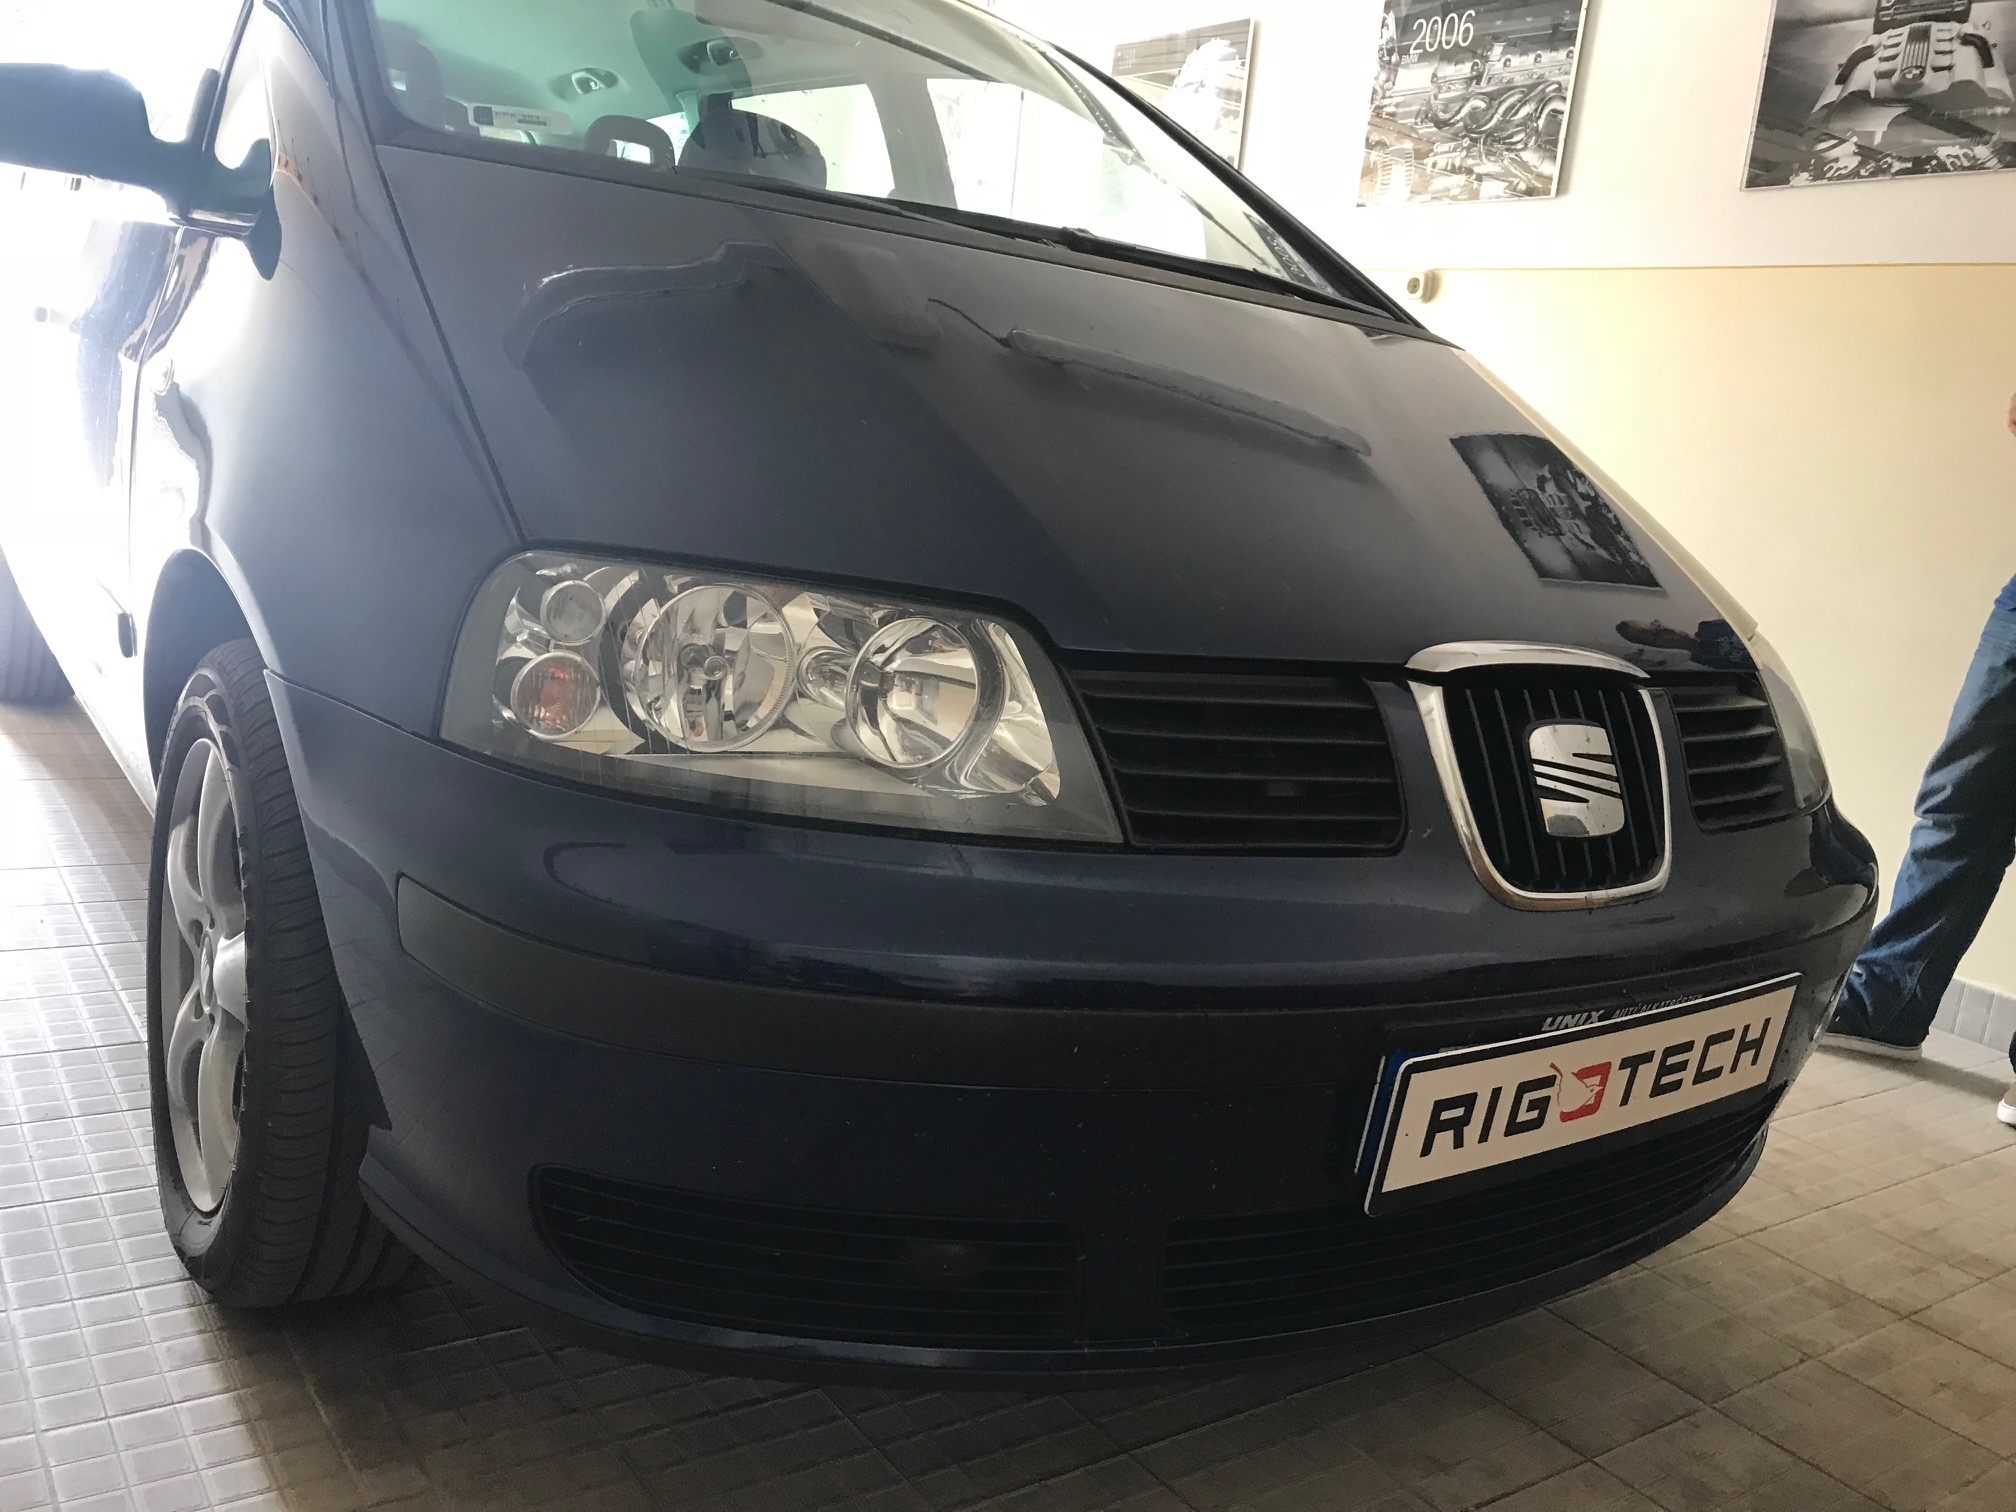 Seat-Alhambra-19Tdi-131Le-Chiptuning